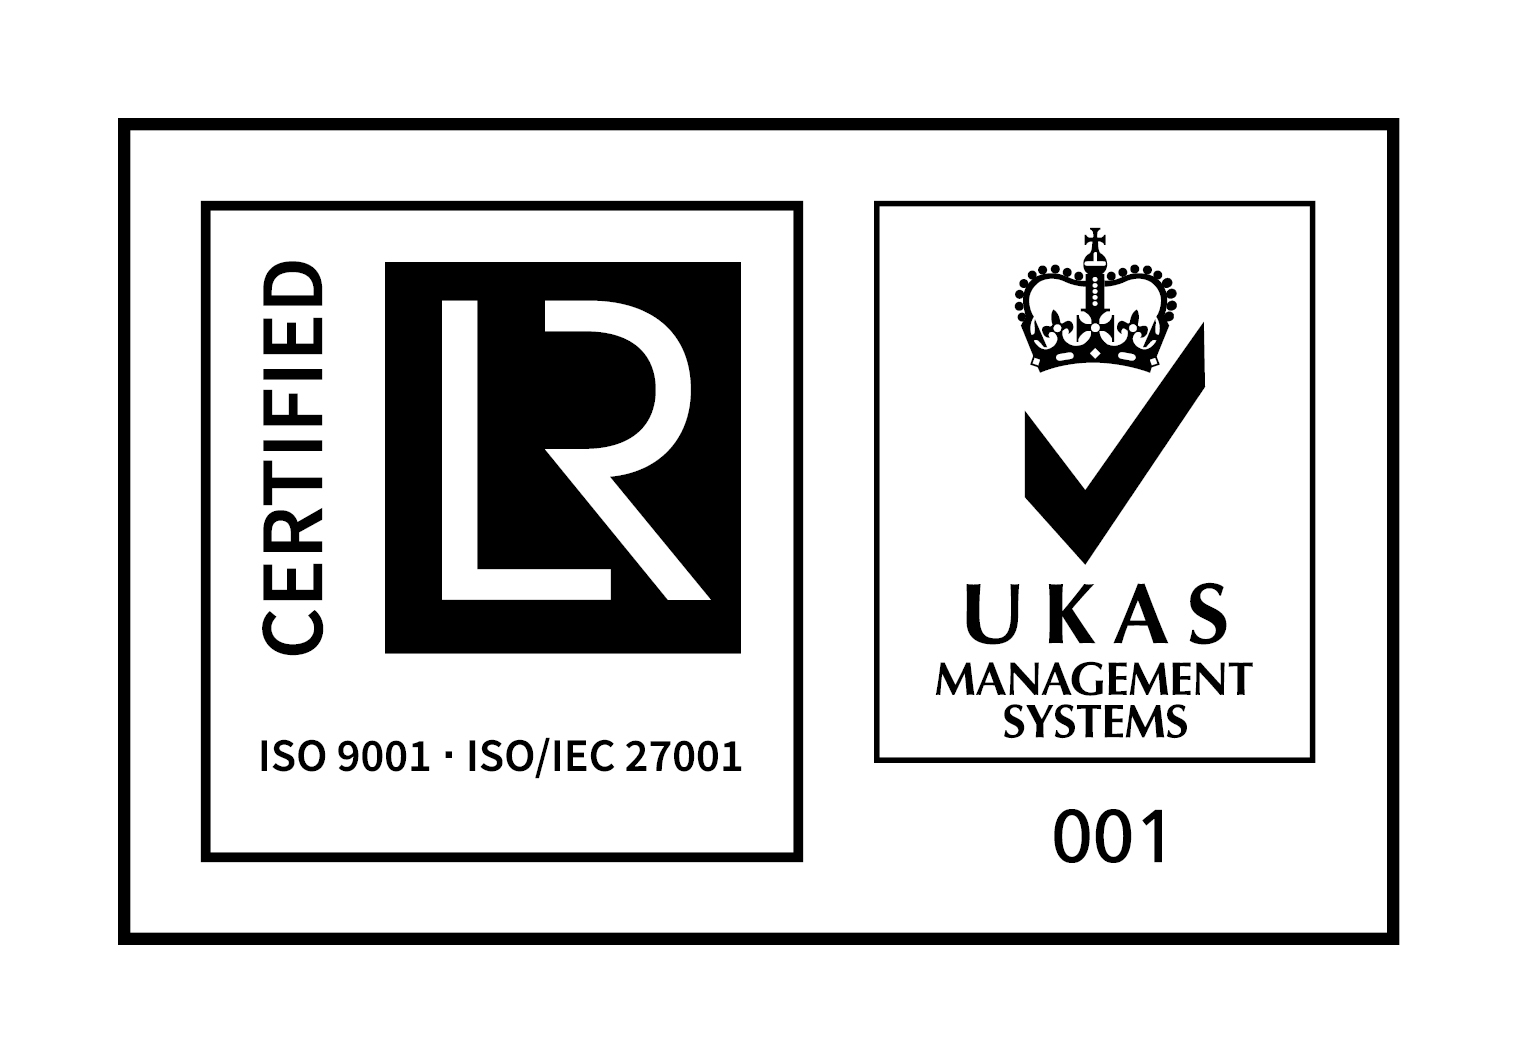 UKAS AND ISO 9001 AND ISO_IEC 27001 RGB